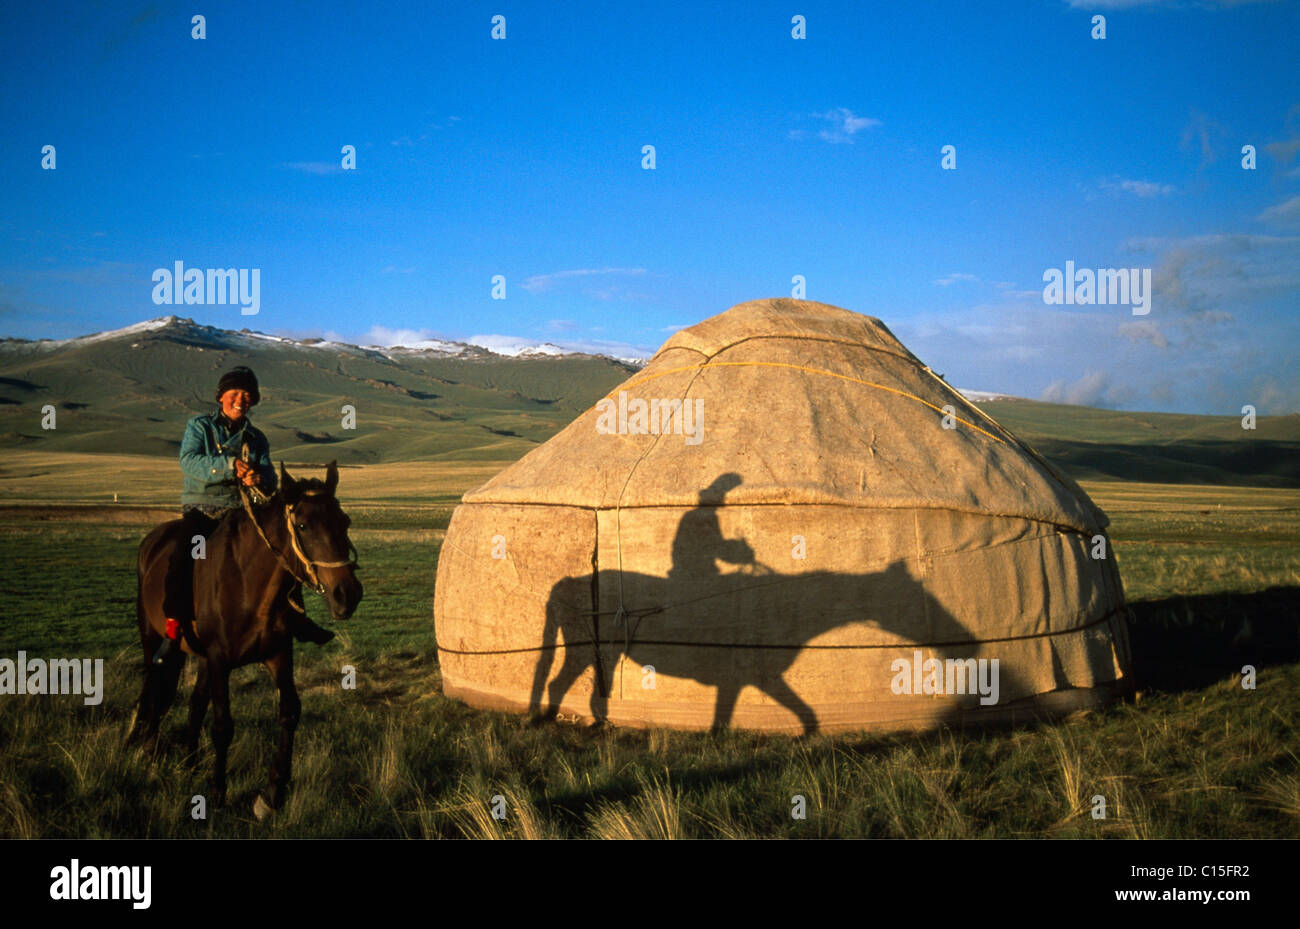 Horse and rider in front of a yurt, Moldo-Too Mountain Range, Song-Kul, Kyrgyzstan, Central Asia Stock Photo